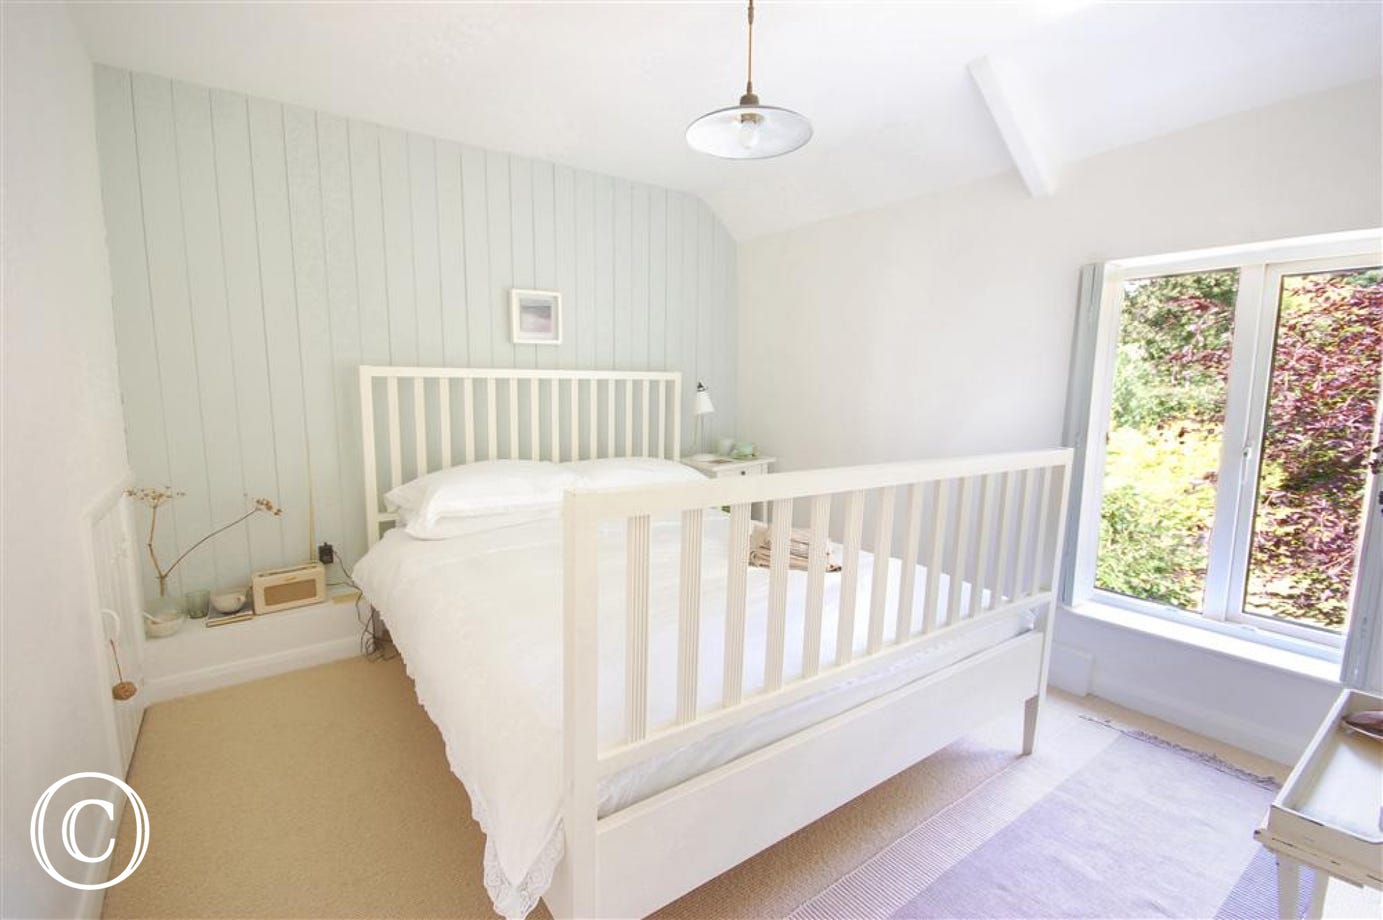 Charming, light double bedroom with a double bed and lovely views of the garden